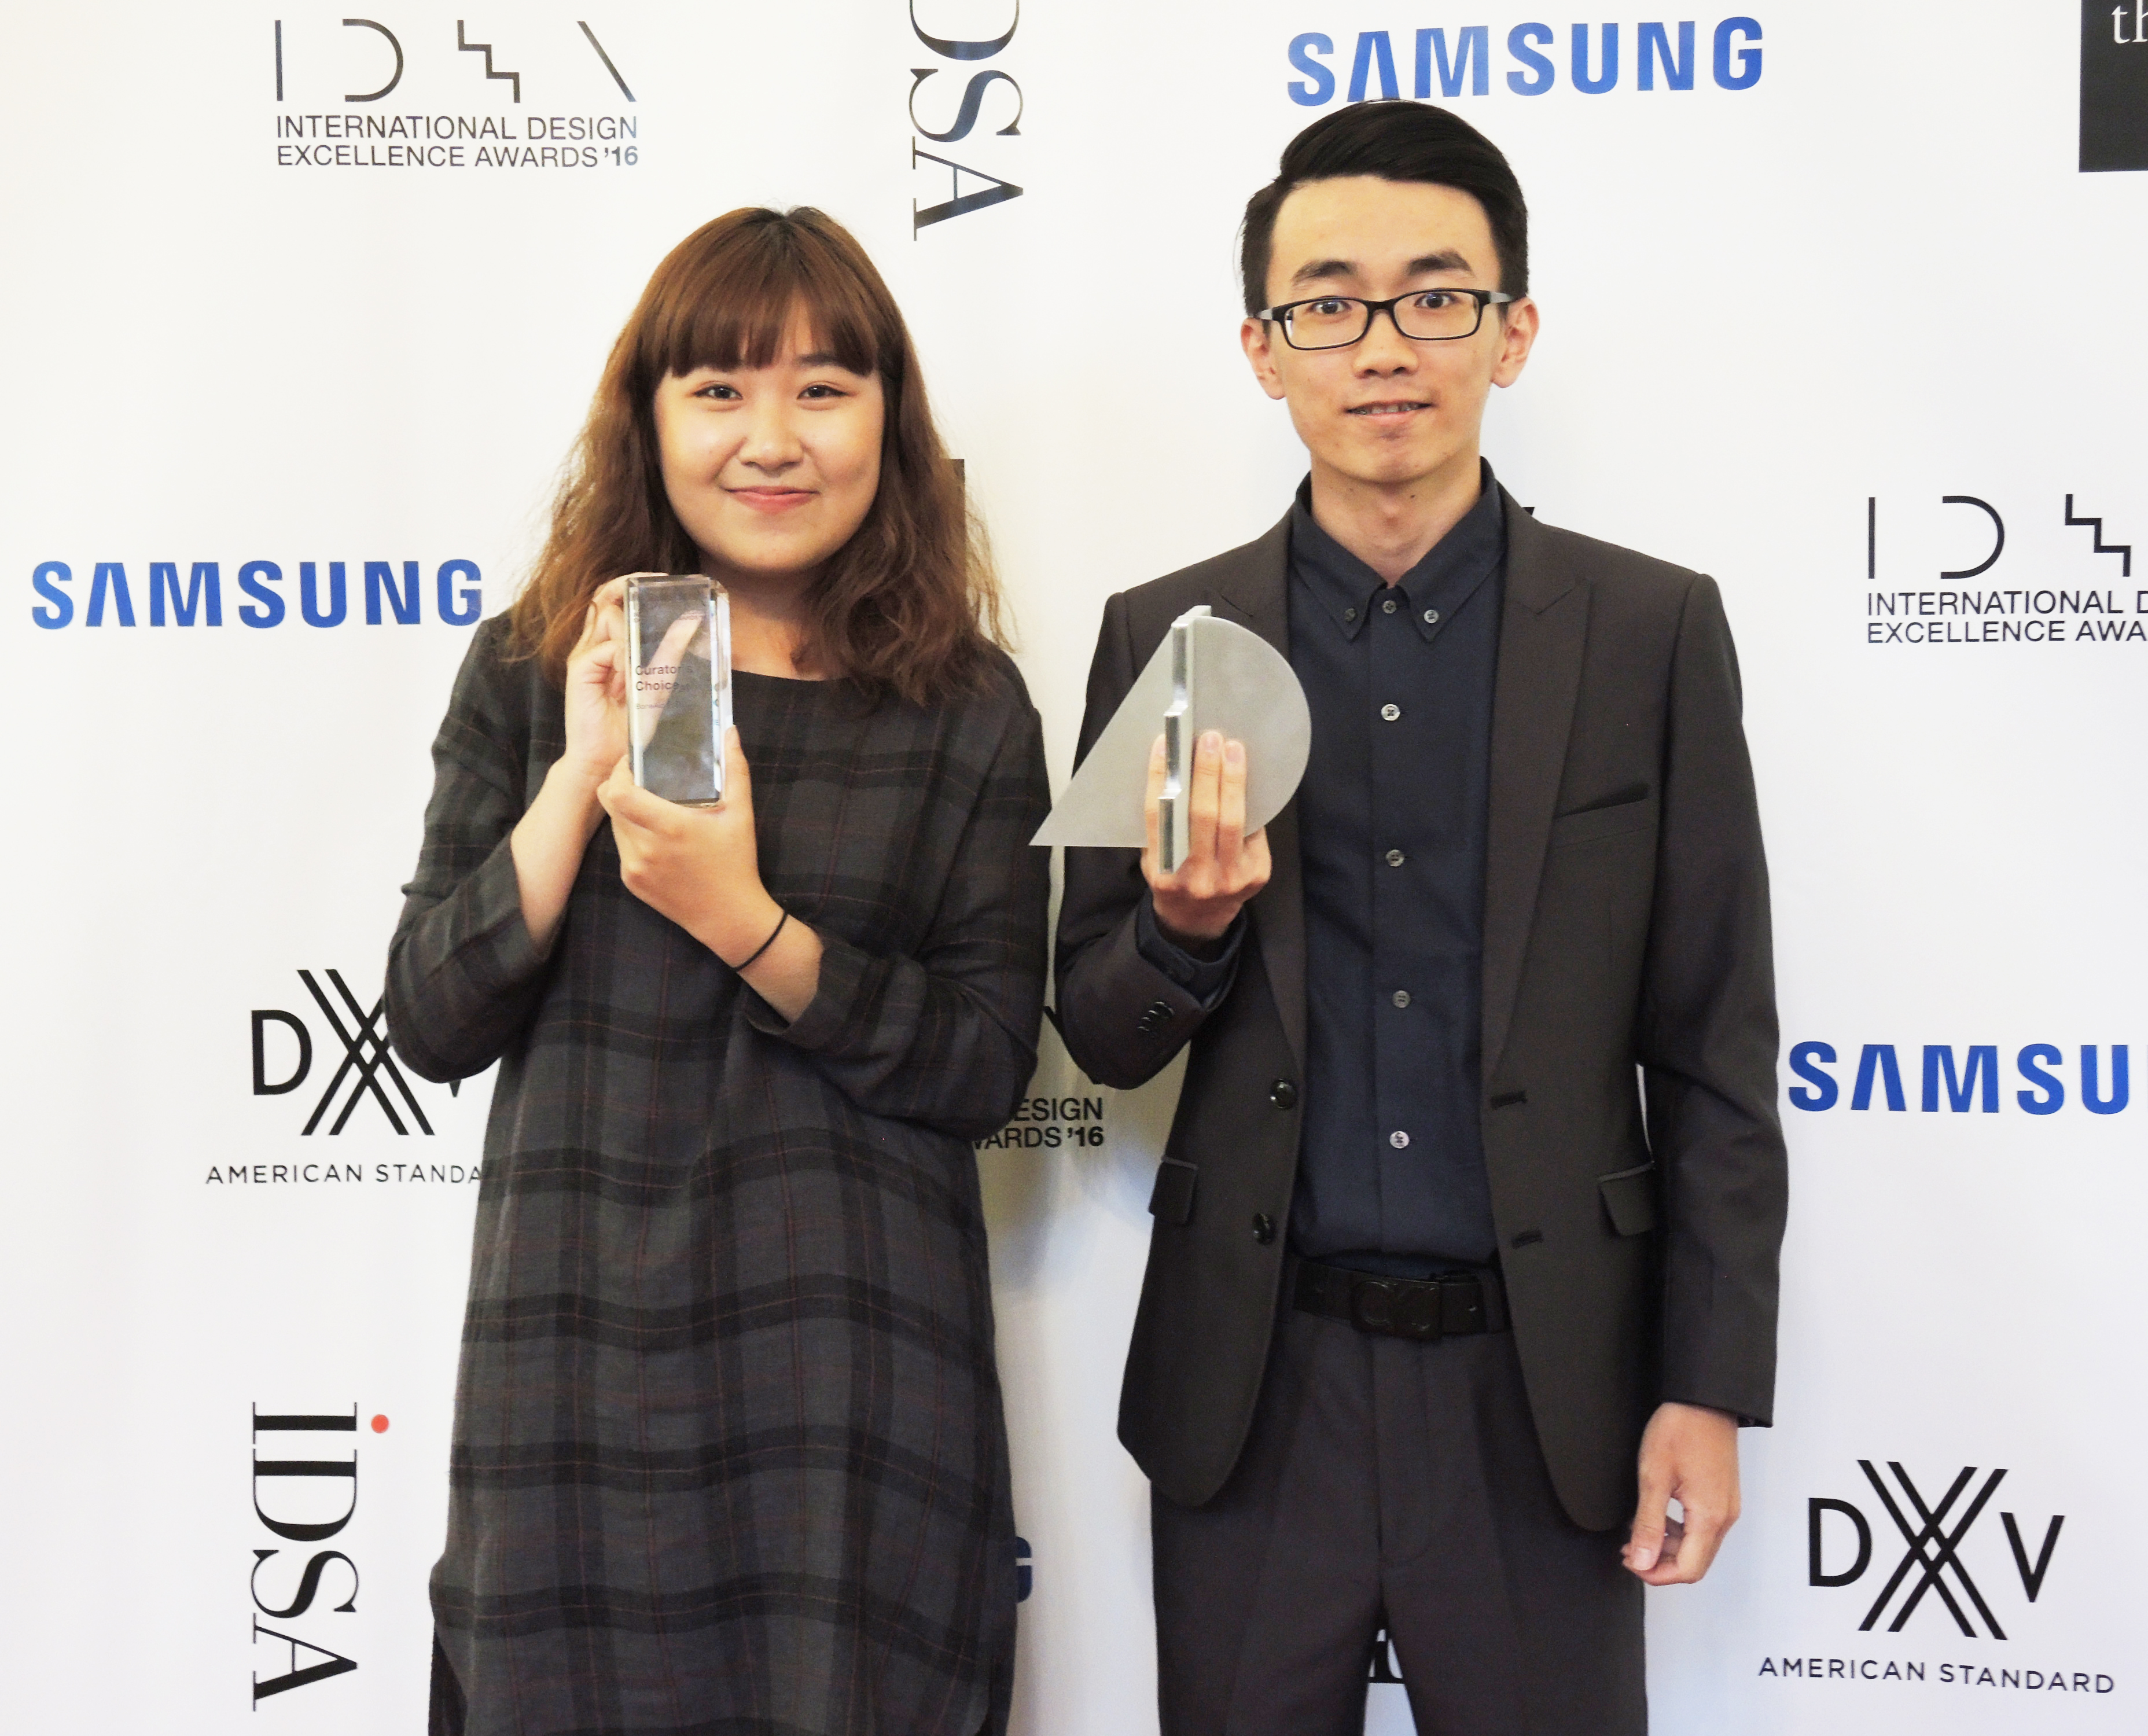 Three students of the Department of Industrial Design of Tunghai University, Yu-Chi Wang, Yu-Man Huang, and Chia-Ling Chen, received a gold medal in the Student Design category as well as the Curator's Choice Award at the 2016 International Design Excellence Awards (IDEA) on August 17, 2016. The IDEA is a premier international design competition sponsored annually by the Industrial Designers Society of America (IDSA).